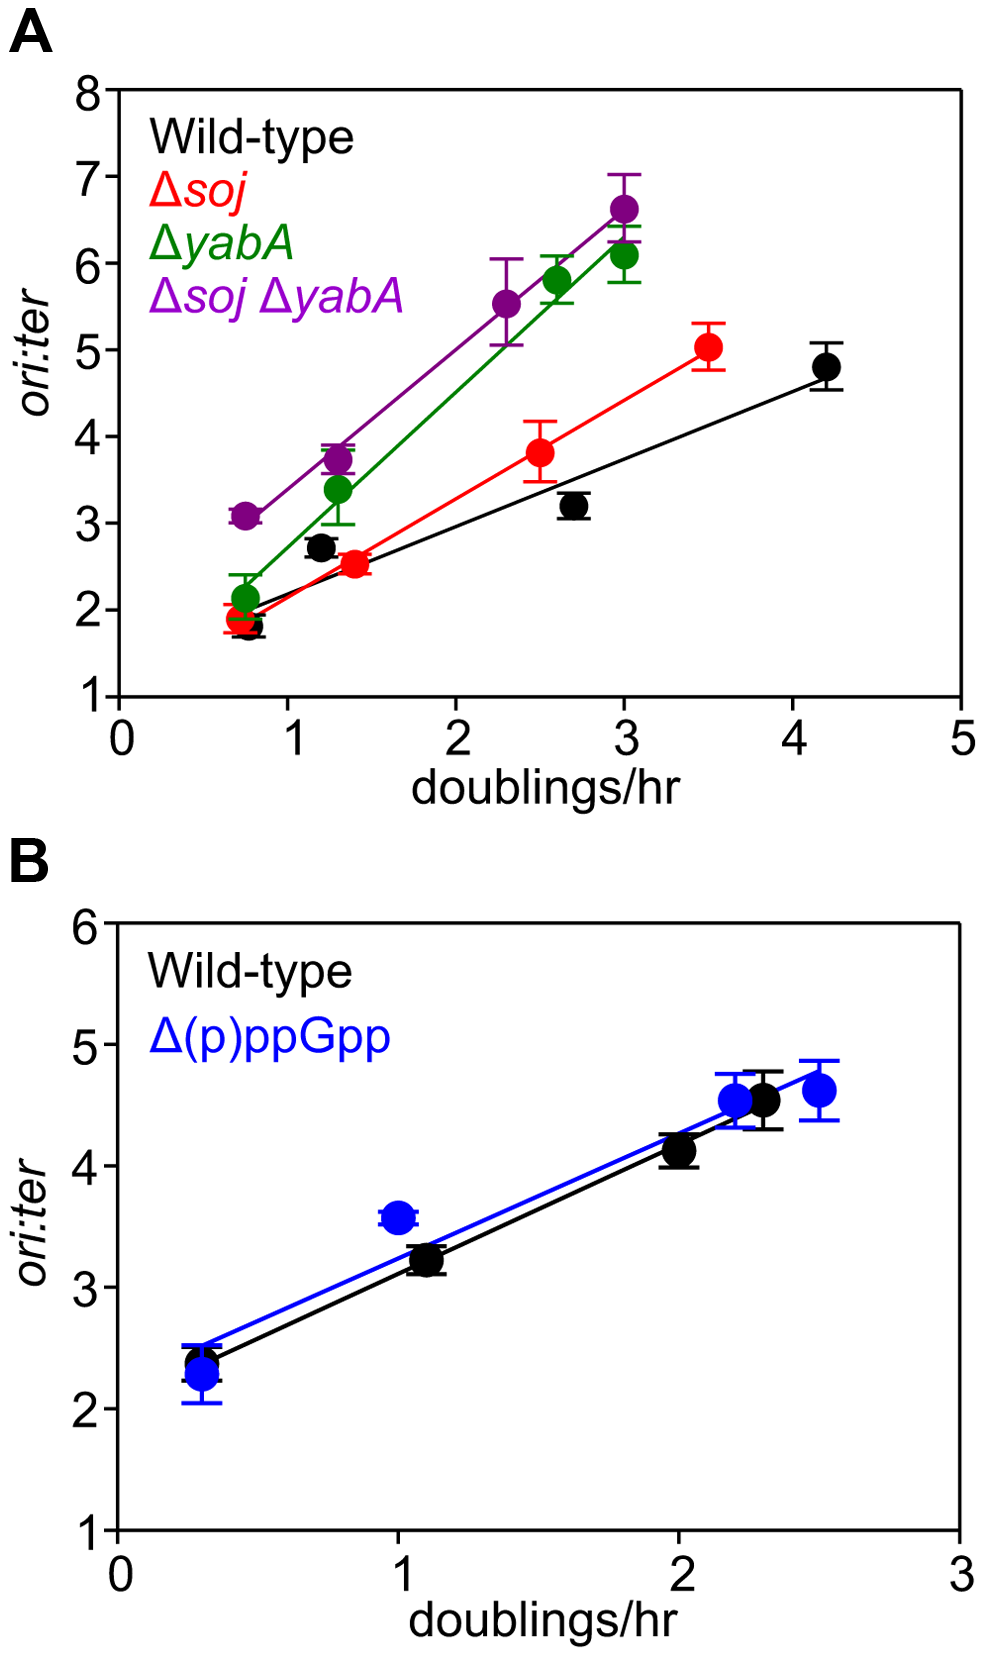 Nutrient-mediated growth rate regulation of DNA replication initiation is independent of Soj, YabA, and (p)ppGpp.